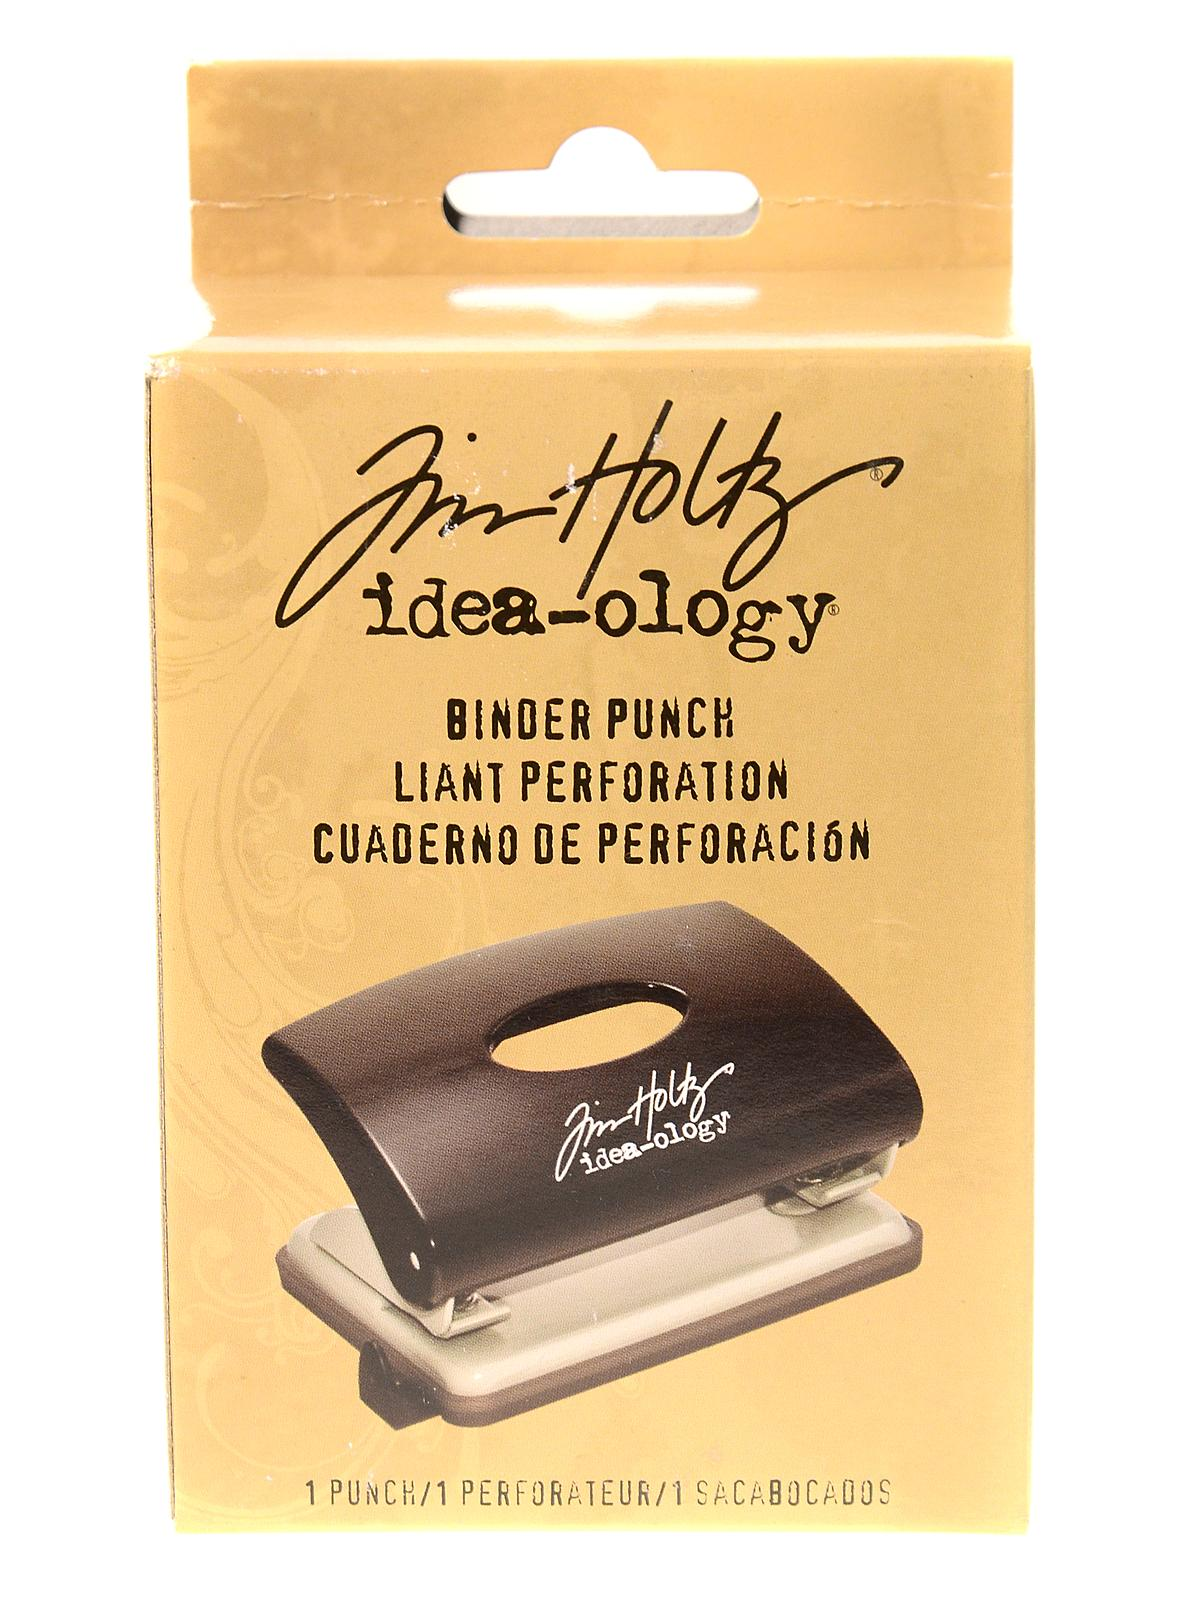 Idea-ology Binder Punch